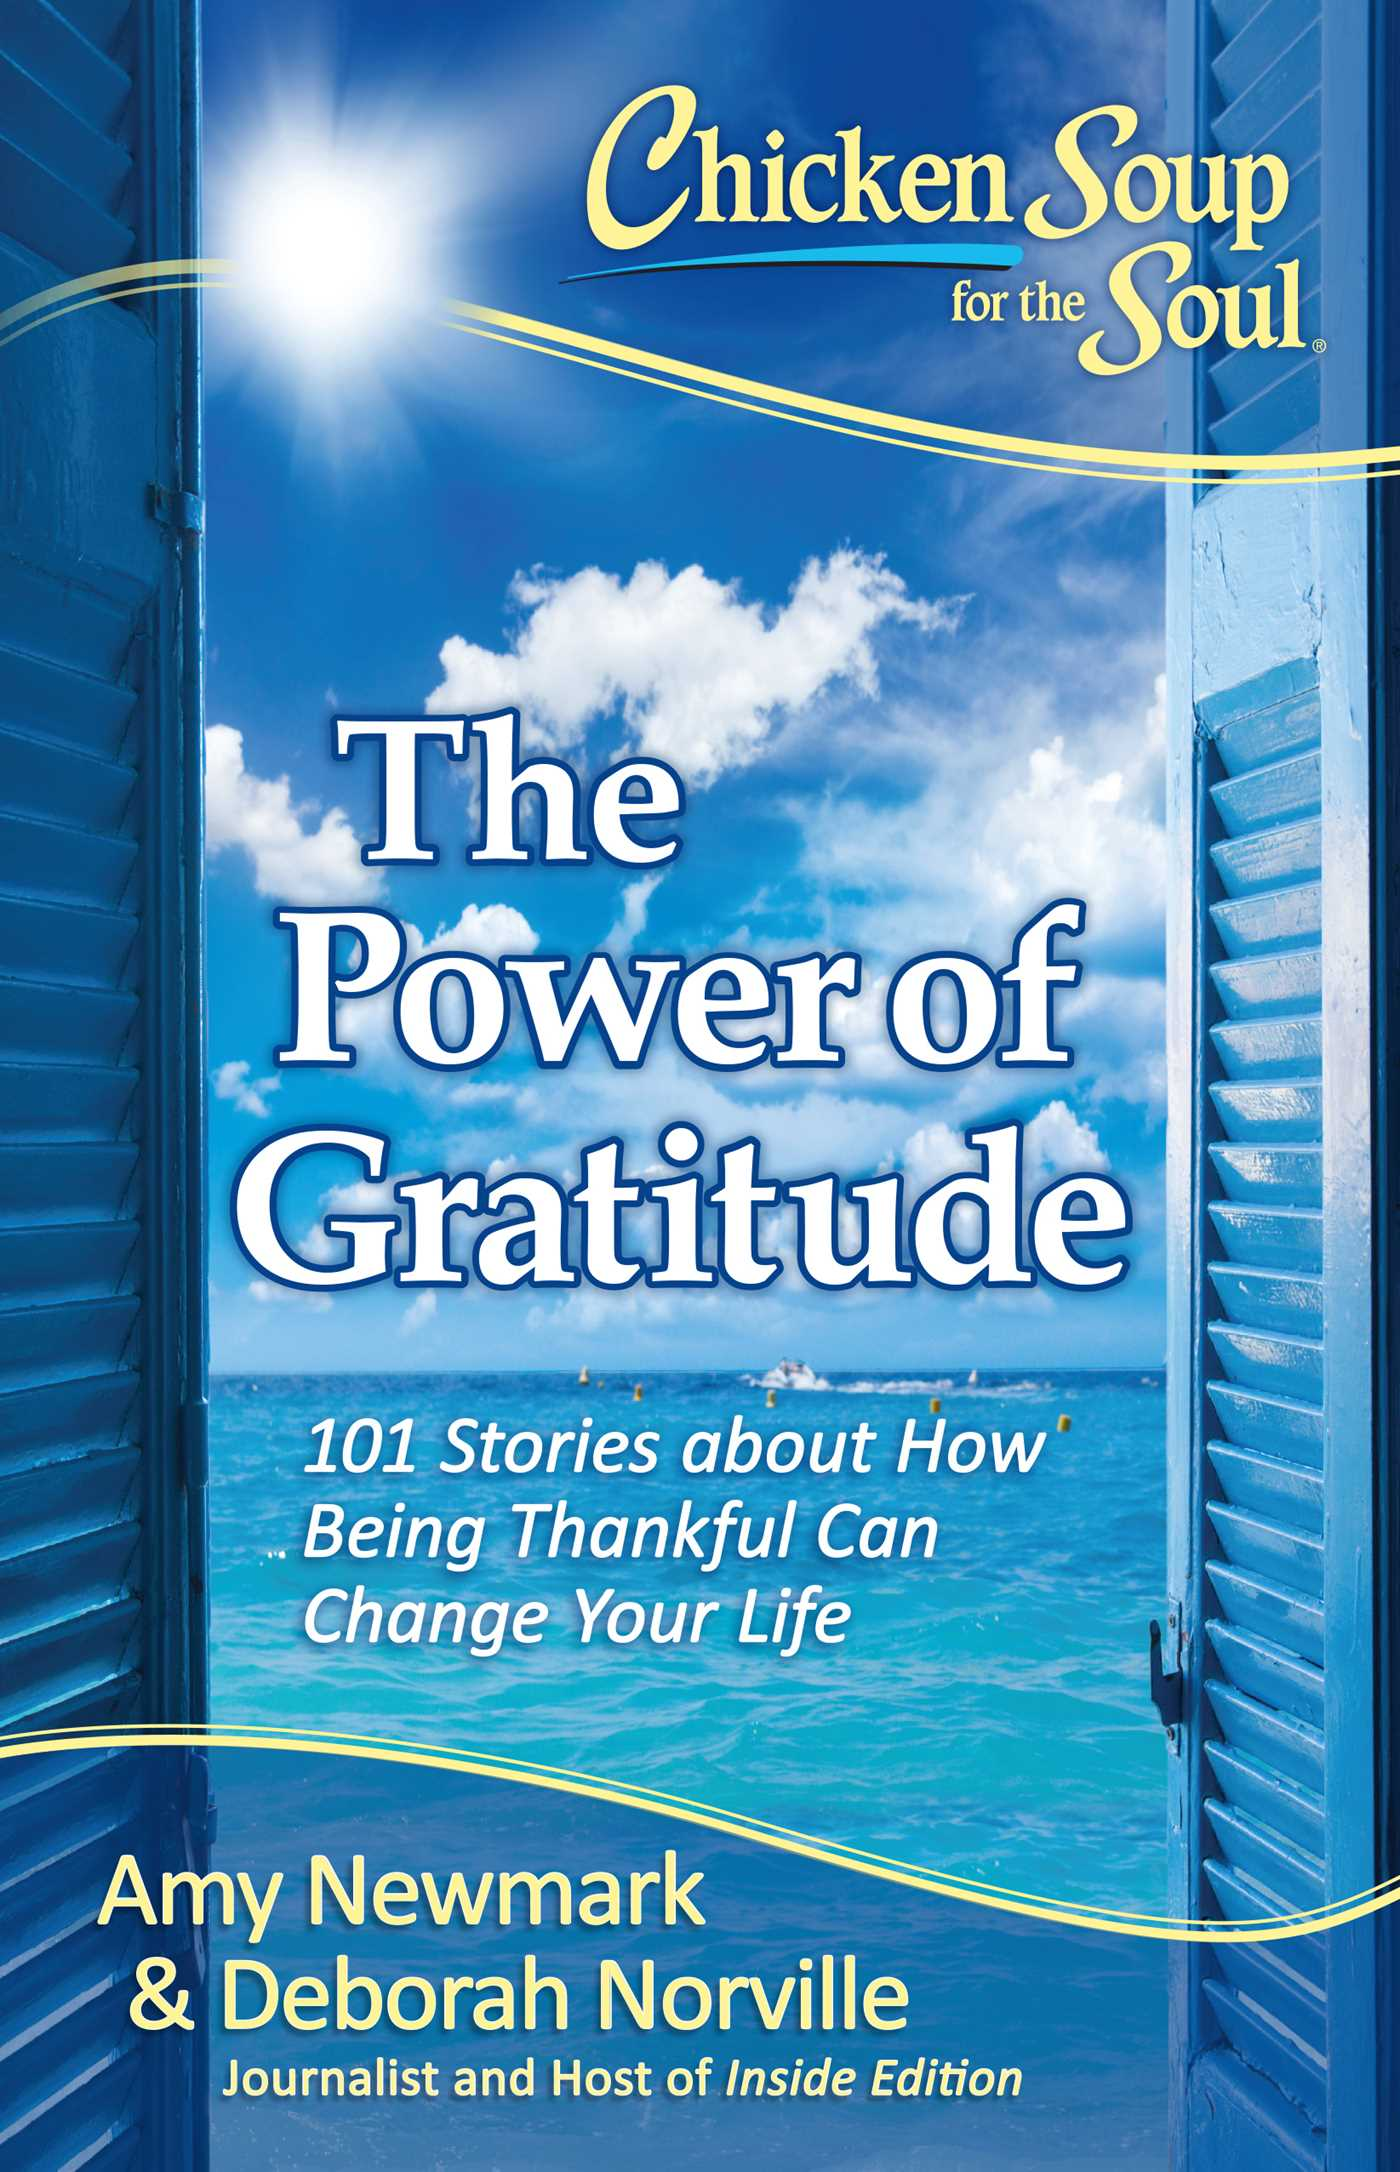 Chicken soup for the soul the power of gratitude 9781611599589 hr